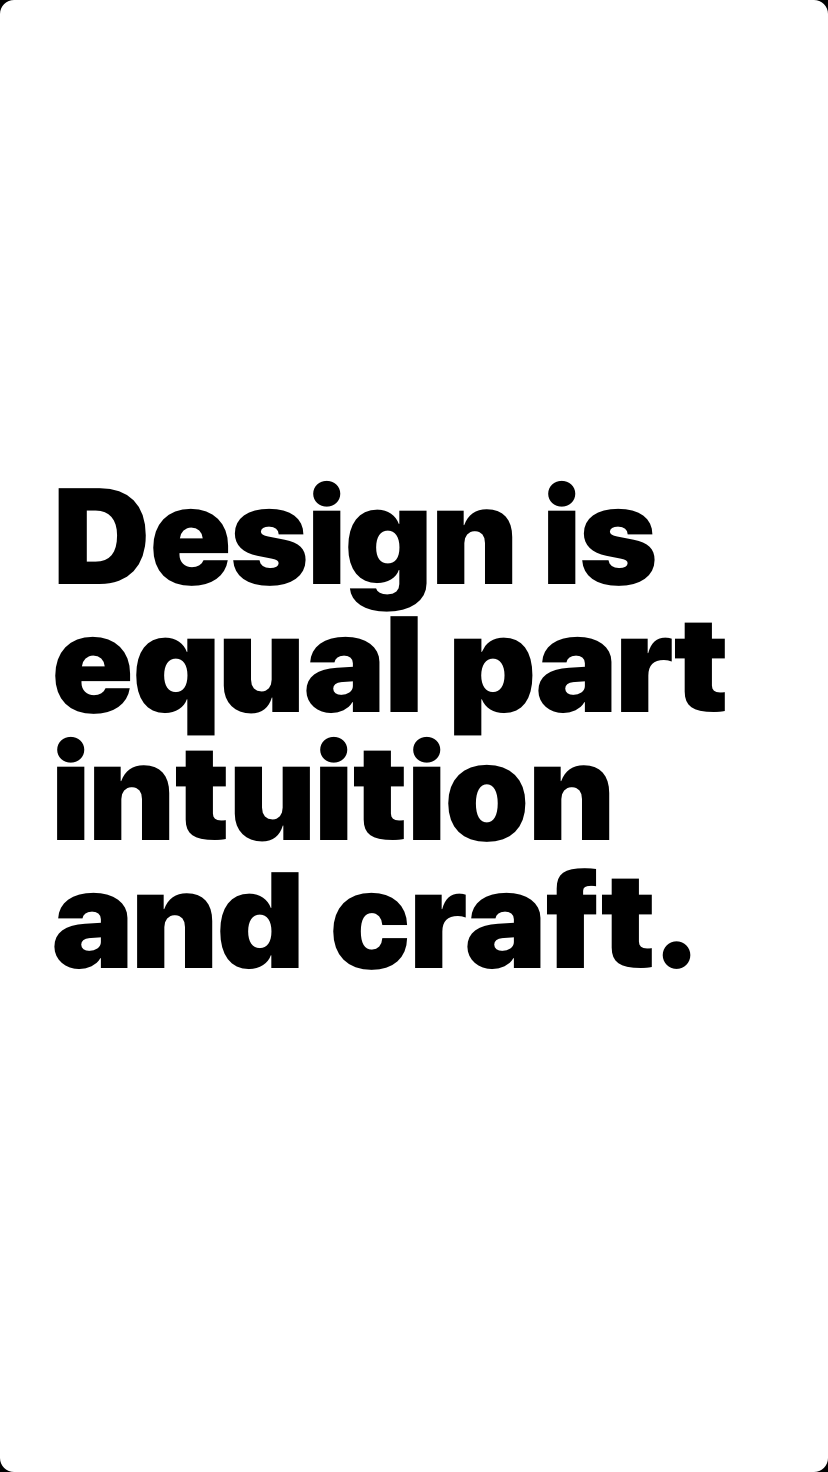 Design is equal part intuition and craft.